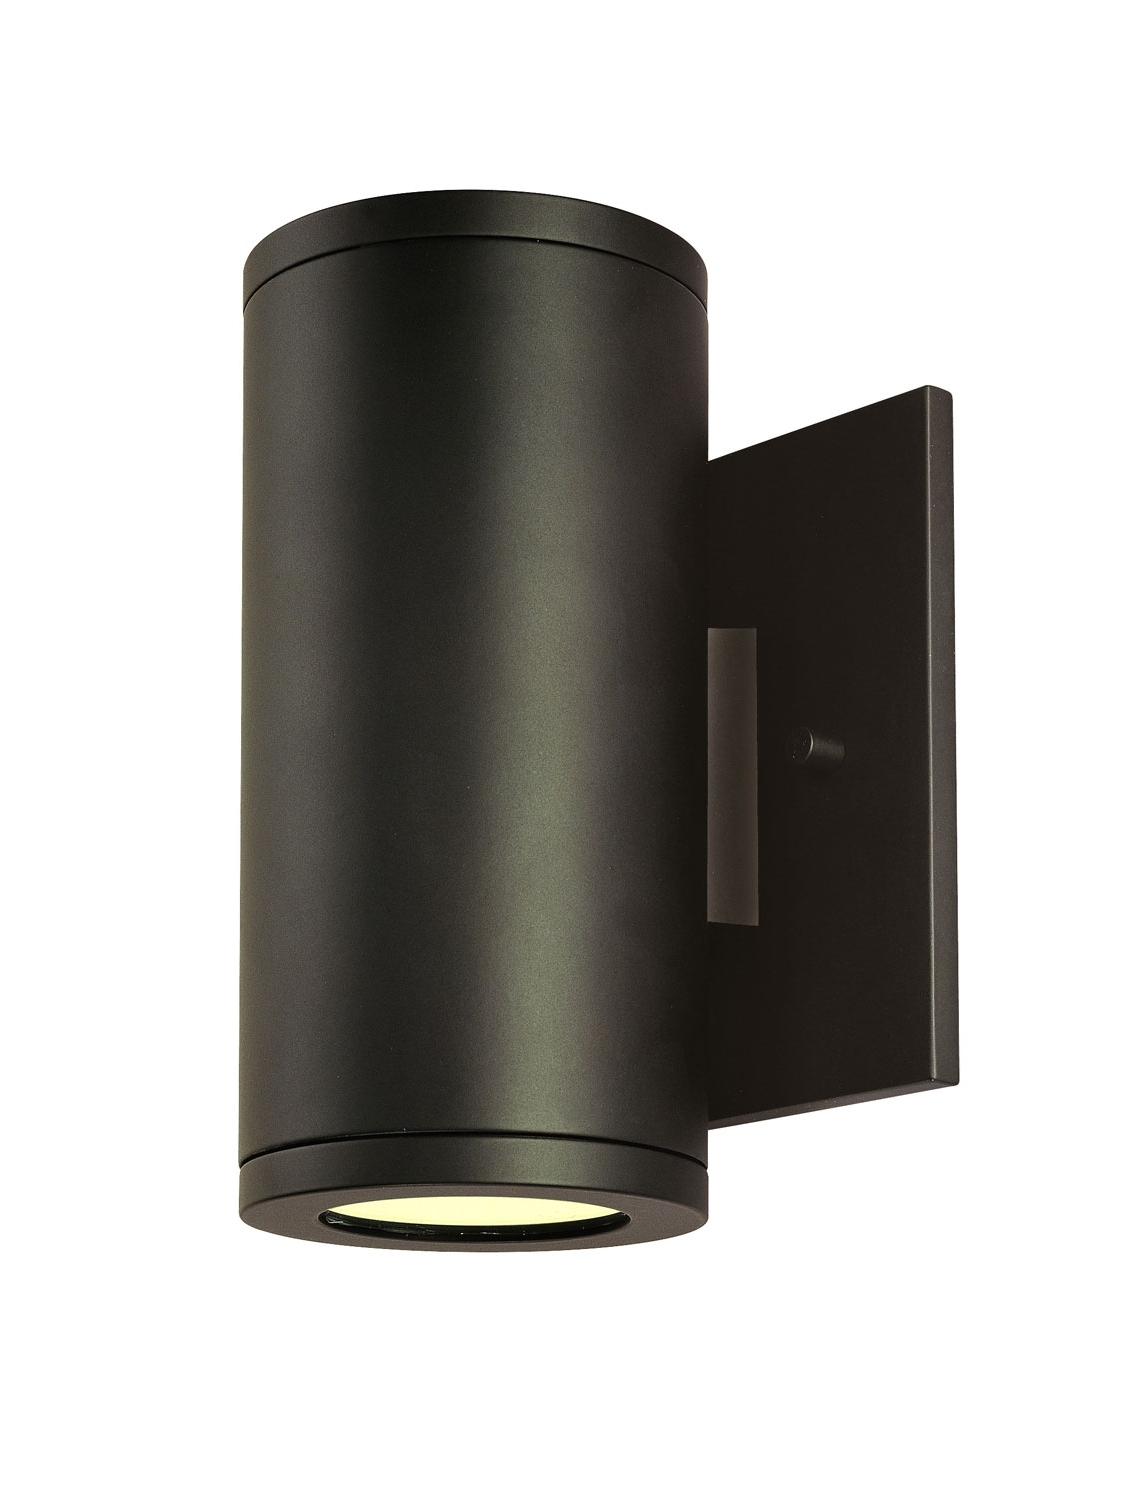 Outdoor Wall Mount Led Light Fixtures Pertaining To 2019 Light : Indoor Wall Mounted Light Fixtures Modern Forms Outdoor Led (View 7 of 20)